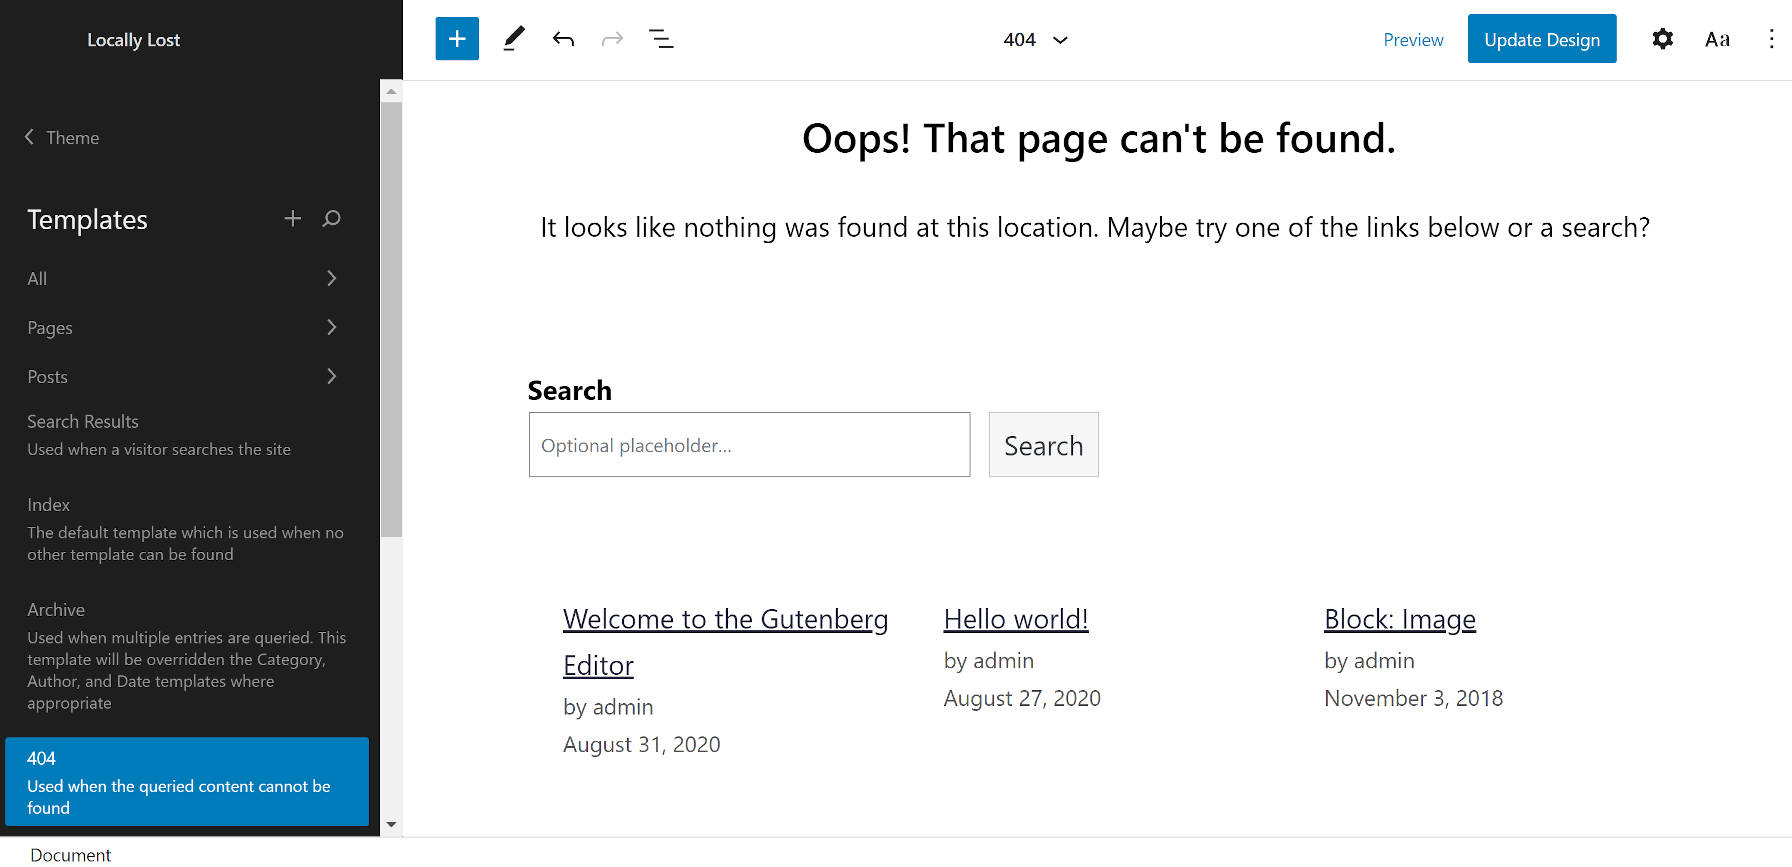 404 template from the WordPress site editor when using the Armando theme.